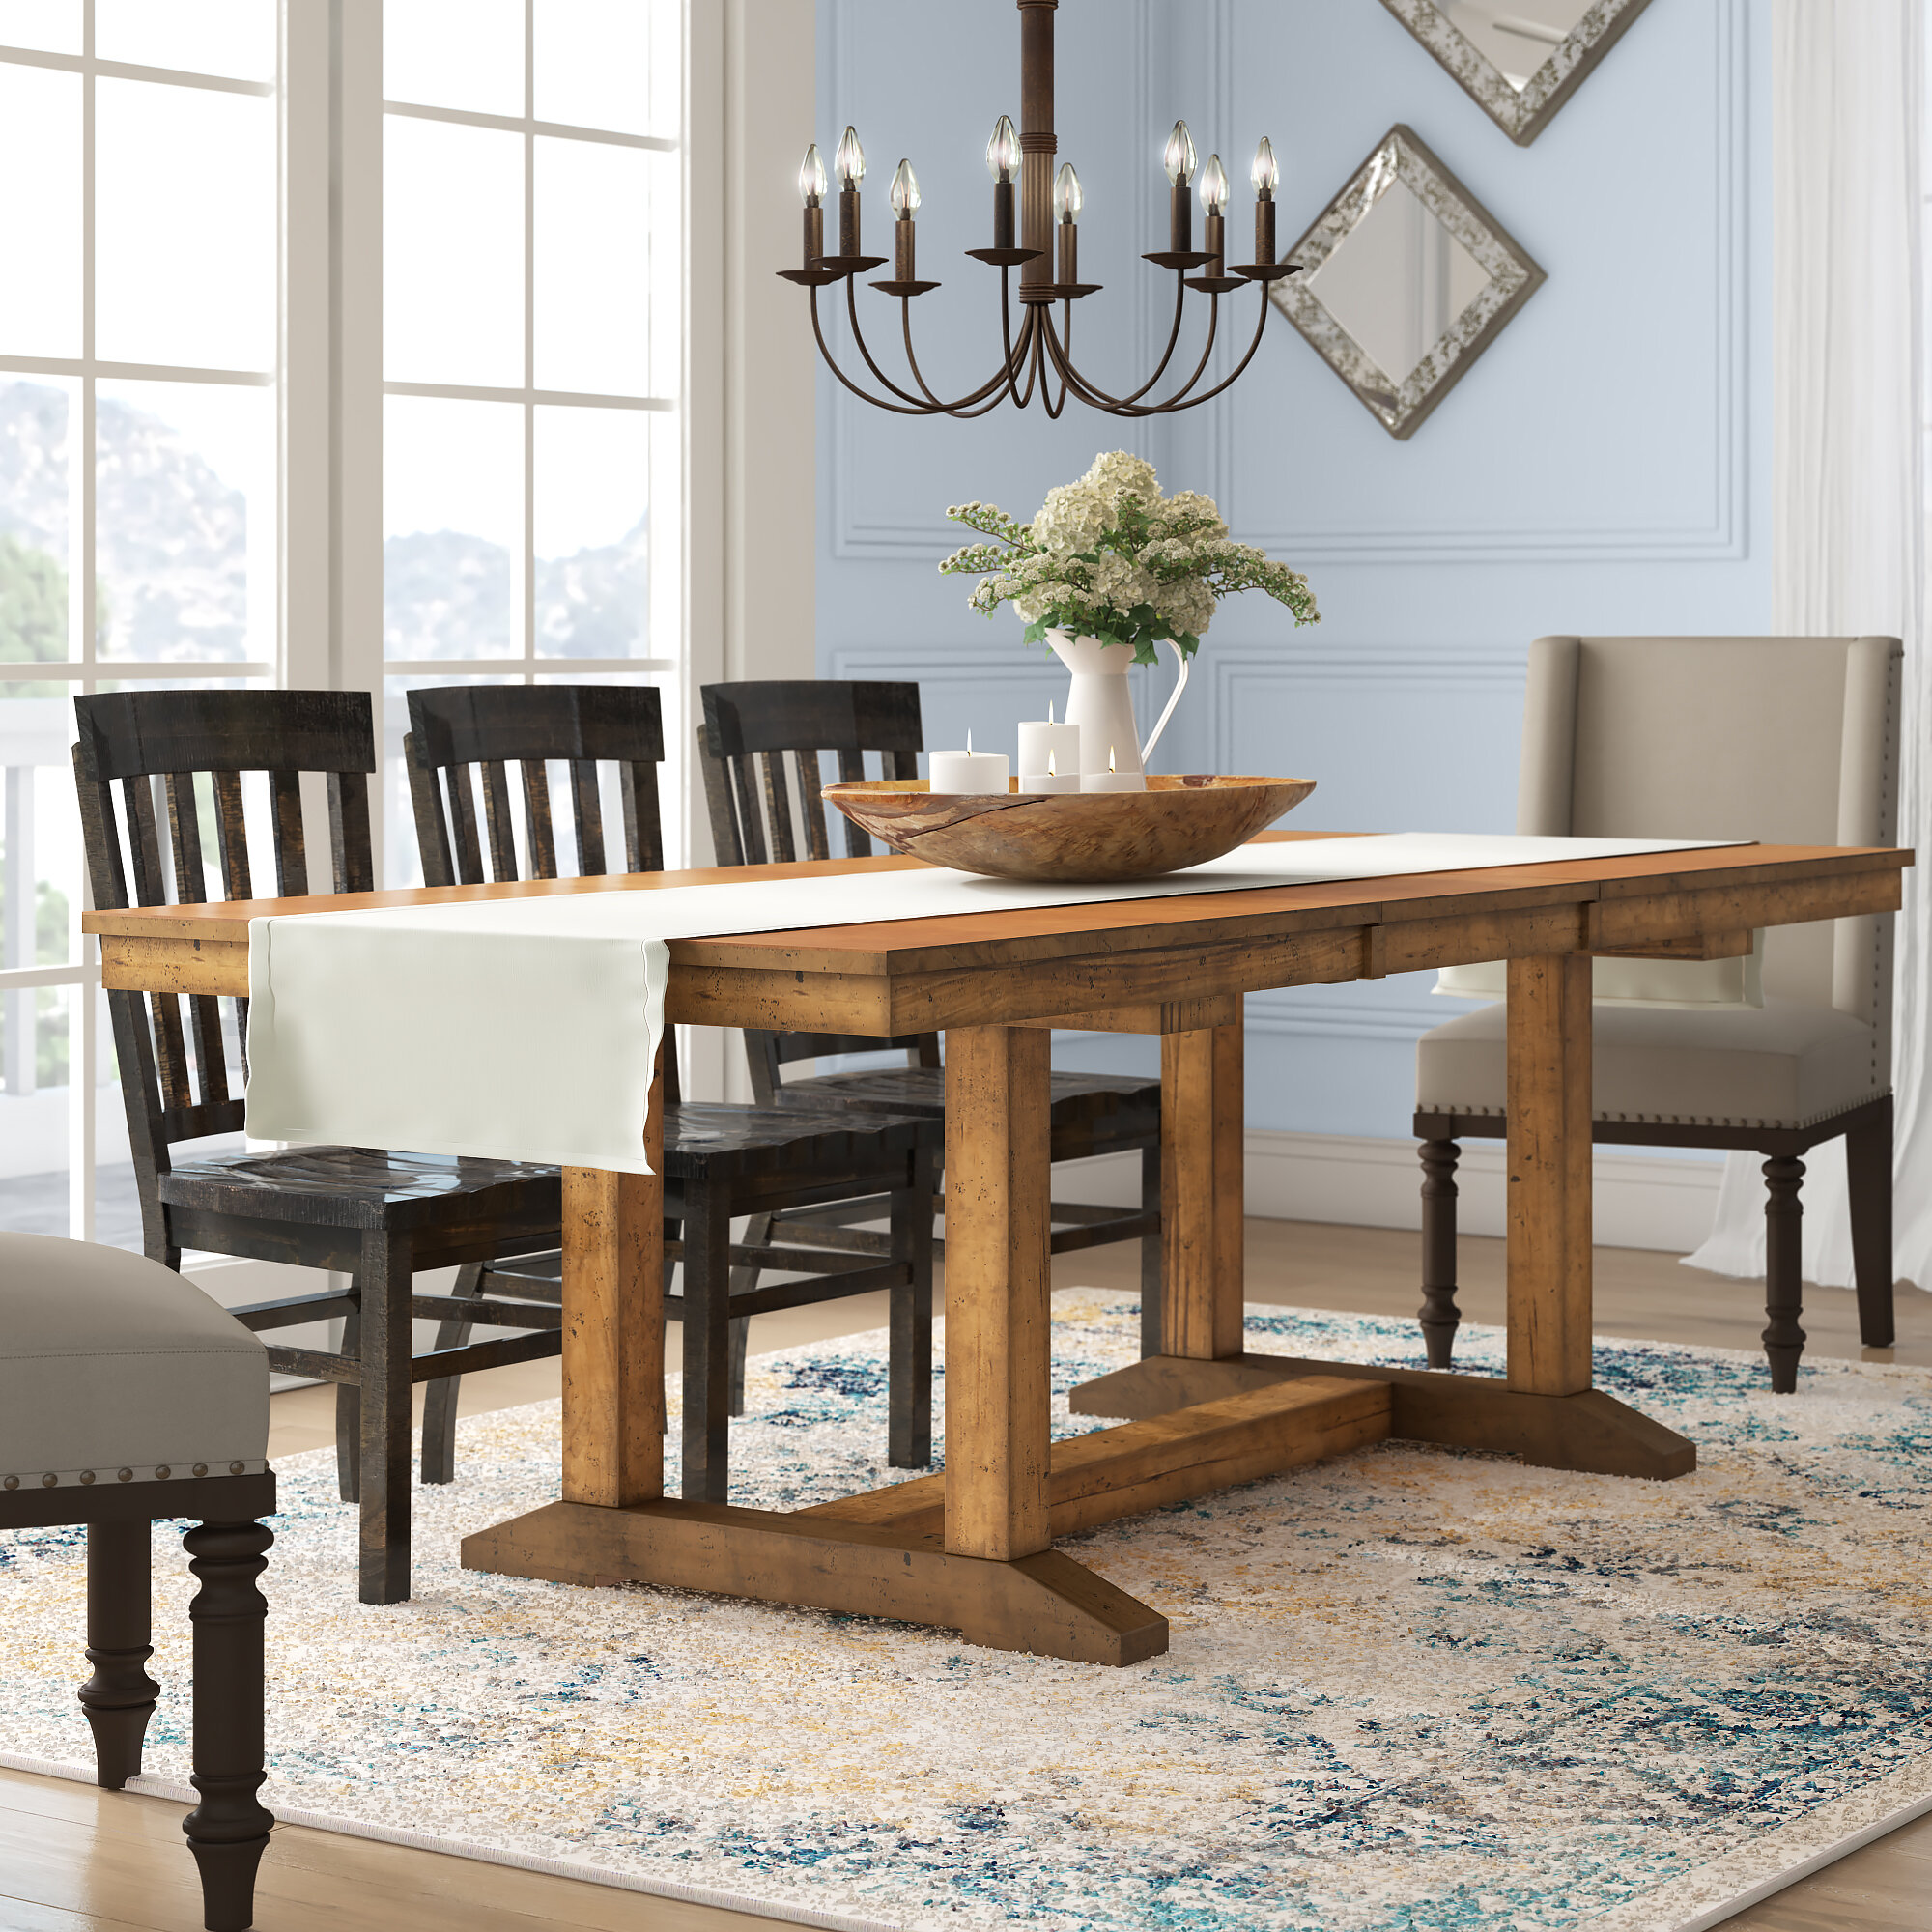 Birch Cottage Country Kitchen Dining Tables You Ll Love In 2021 Wayfair